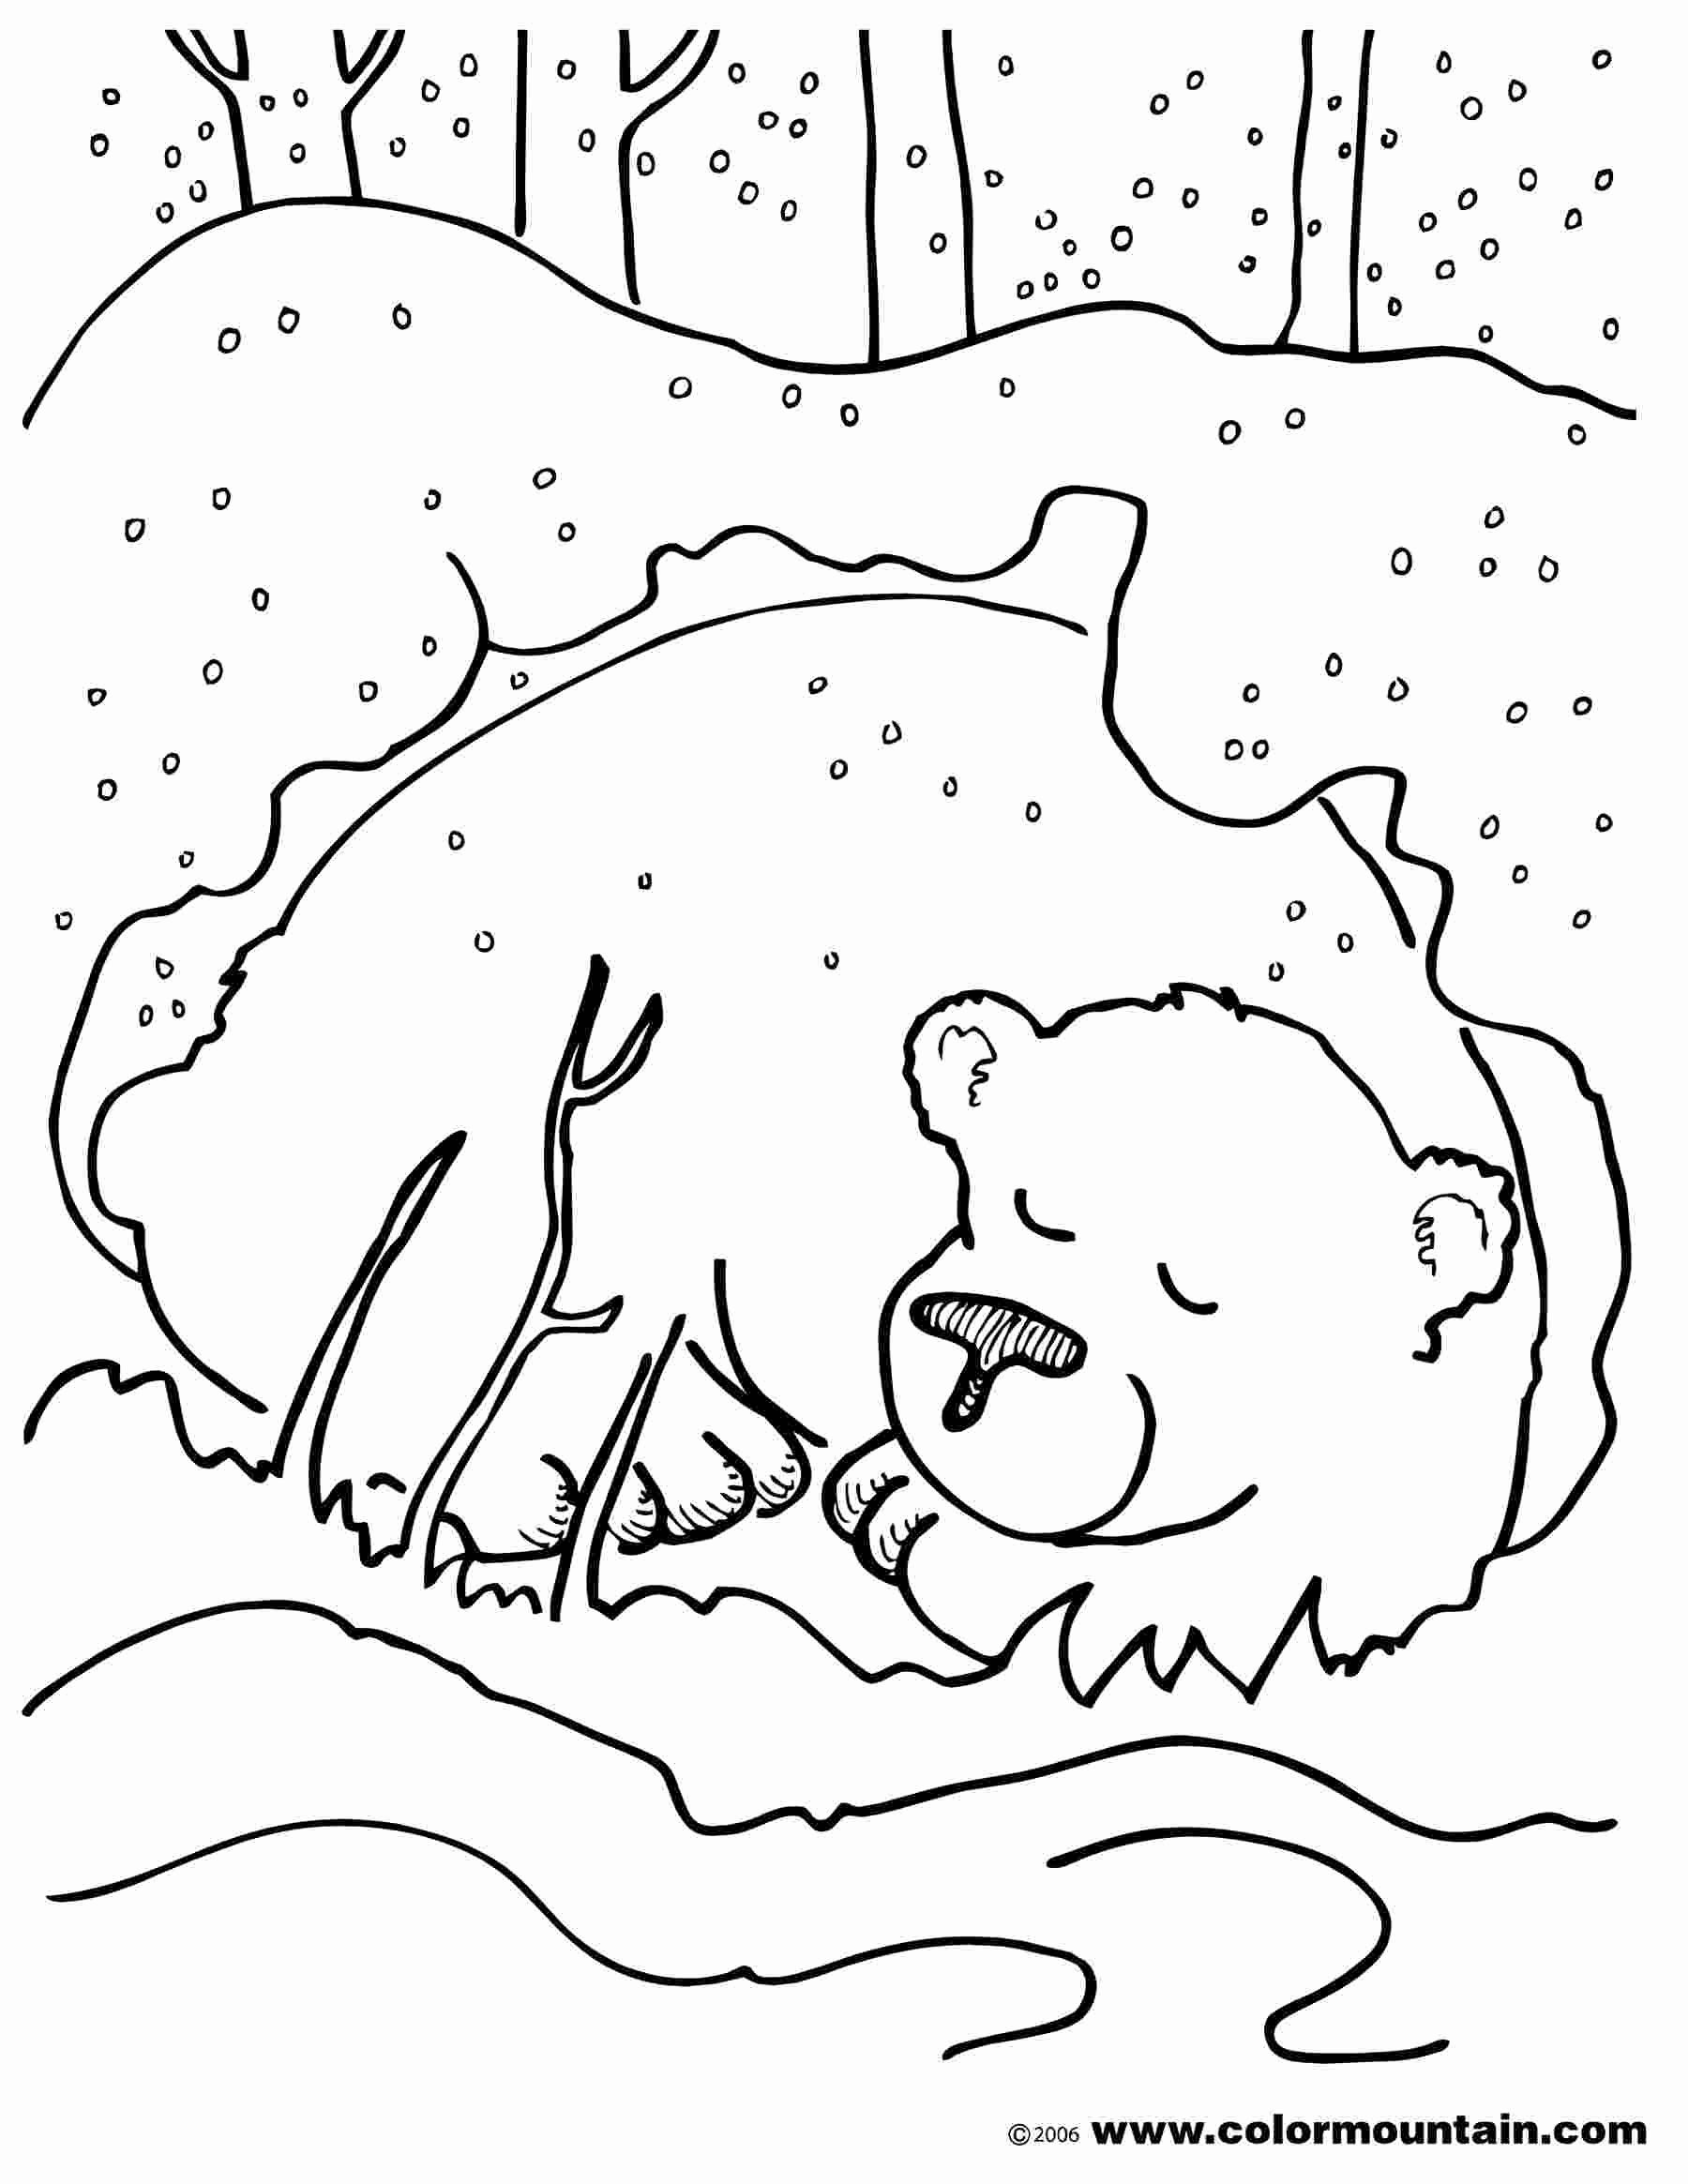 Winter Animal Coloring Pages For Kids Bear Coloring Pages Coloring Pages Winter Animal Coloring Pages